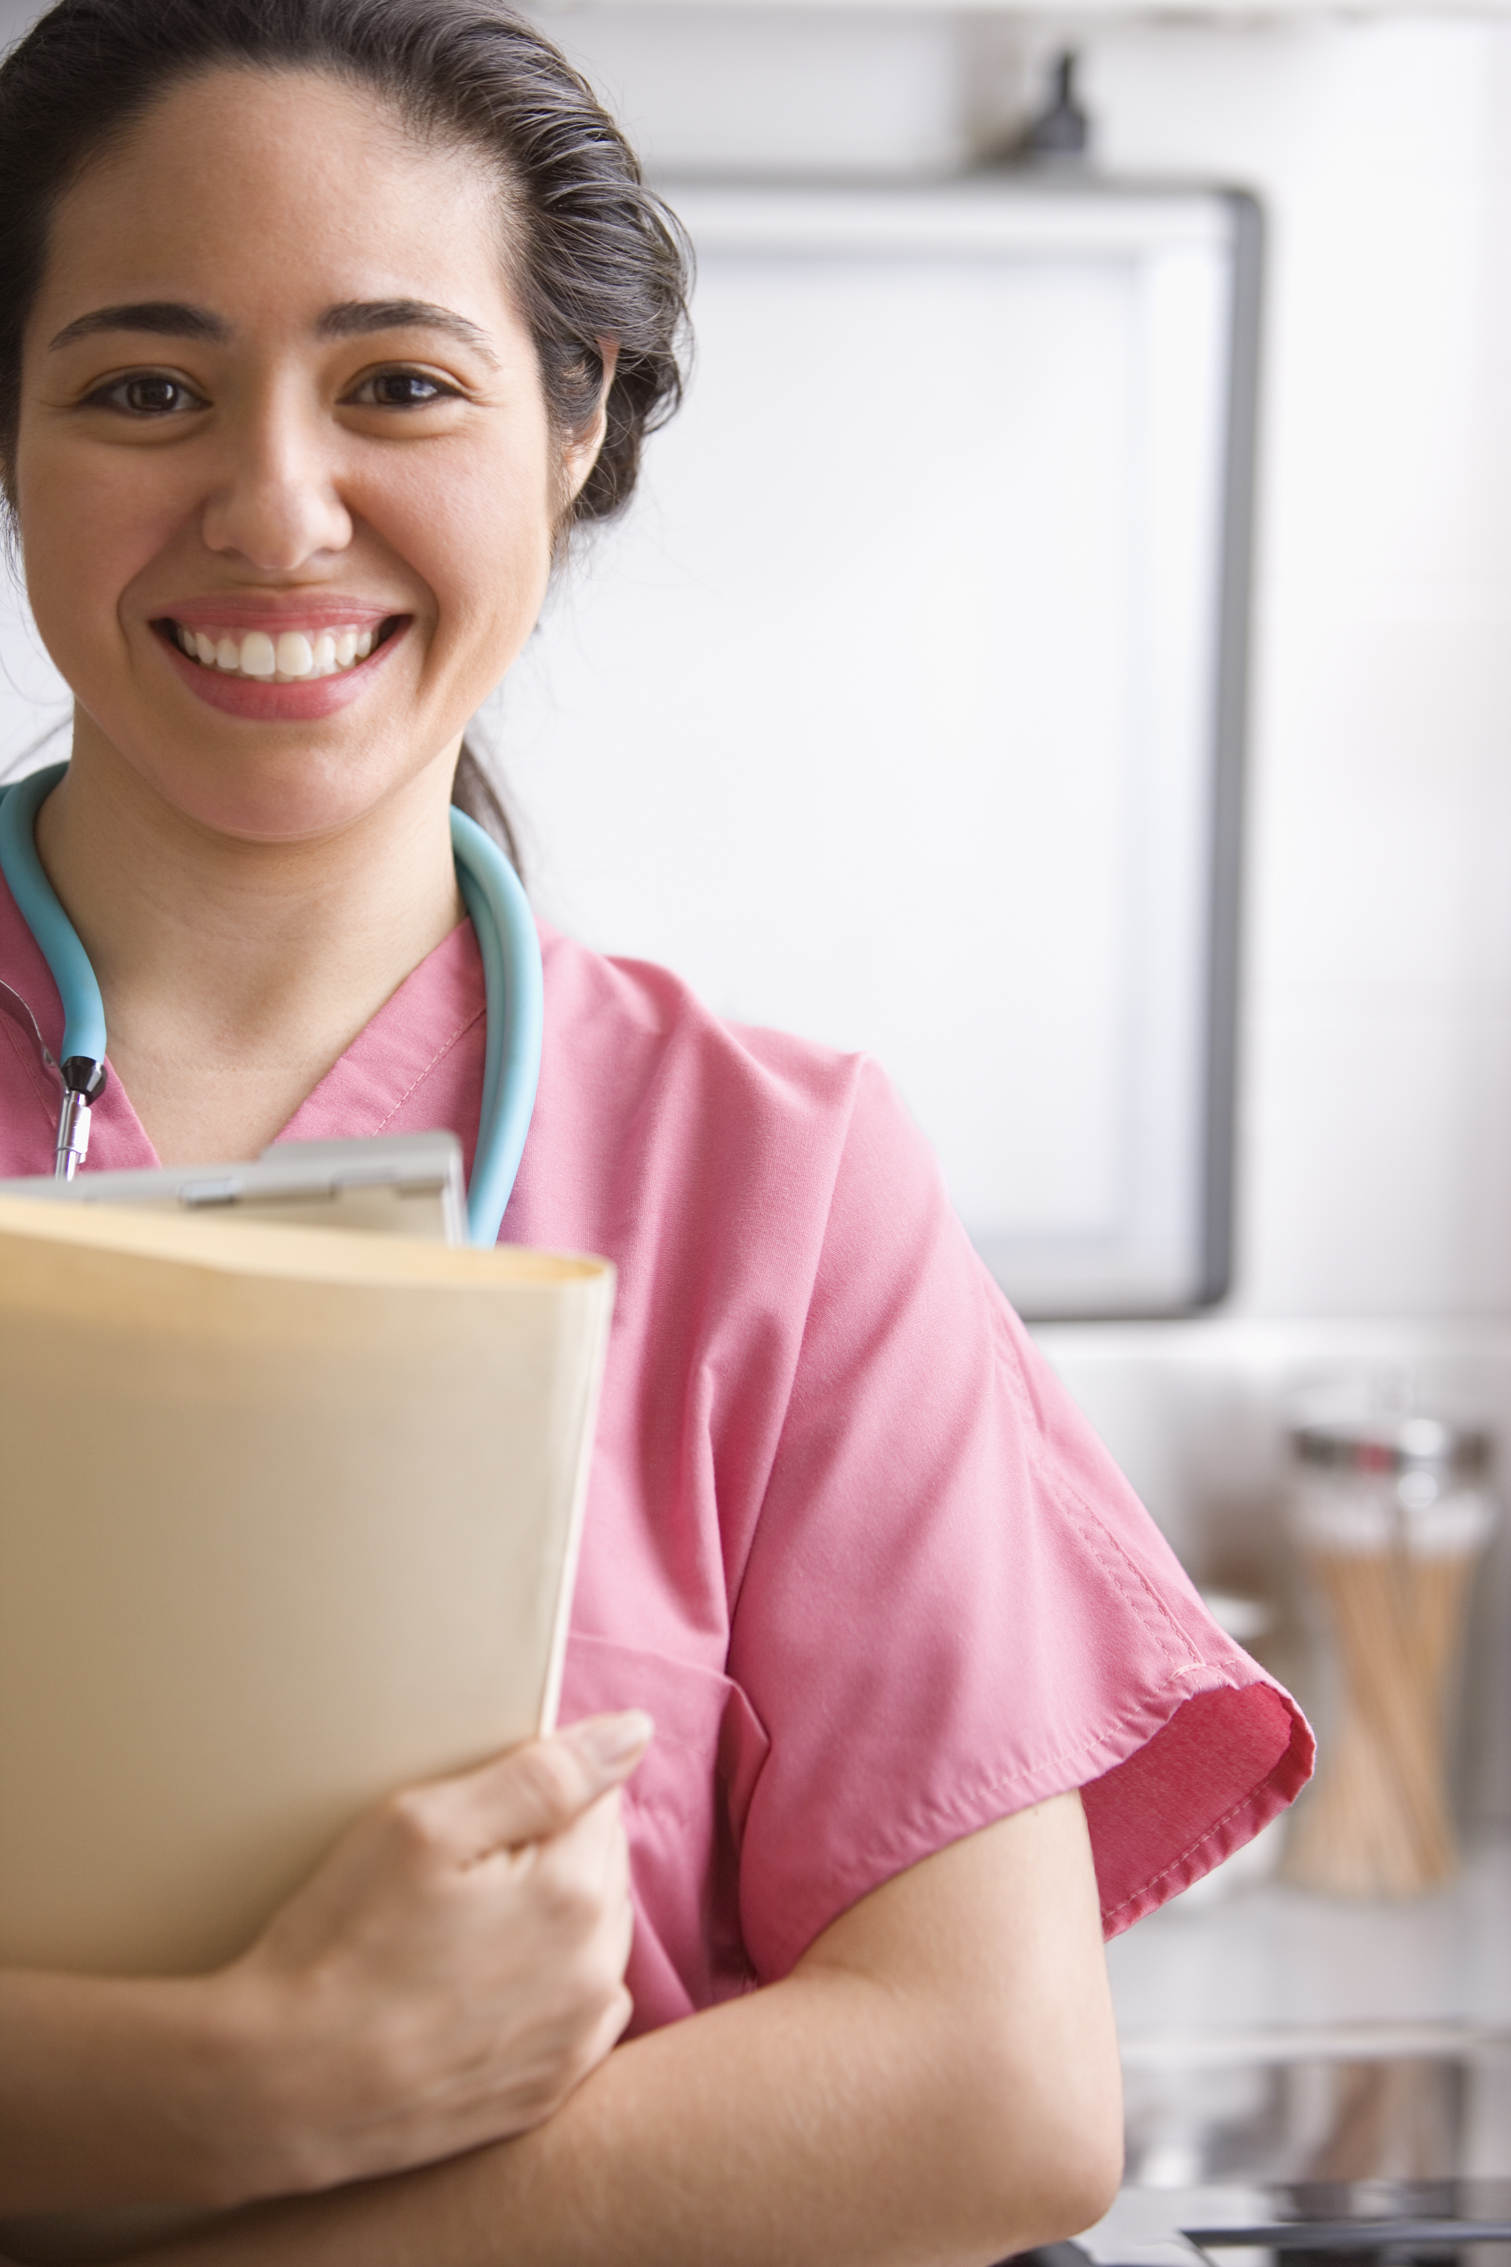 How to Keep Your Patients: Hygienists Have a Role in Keeping Hygiene Filled